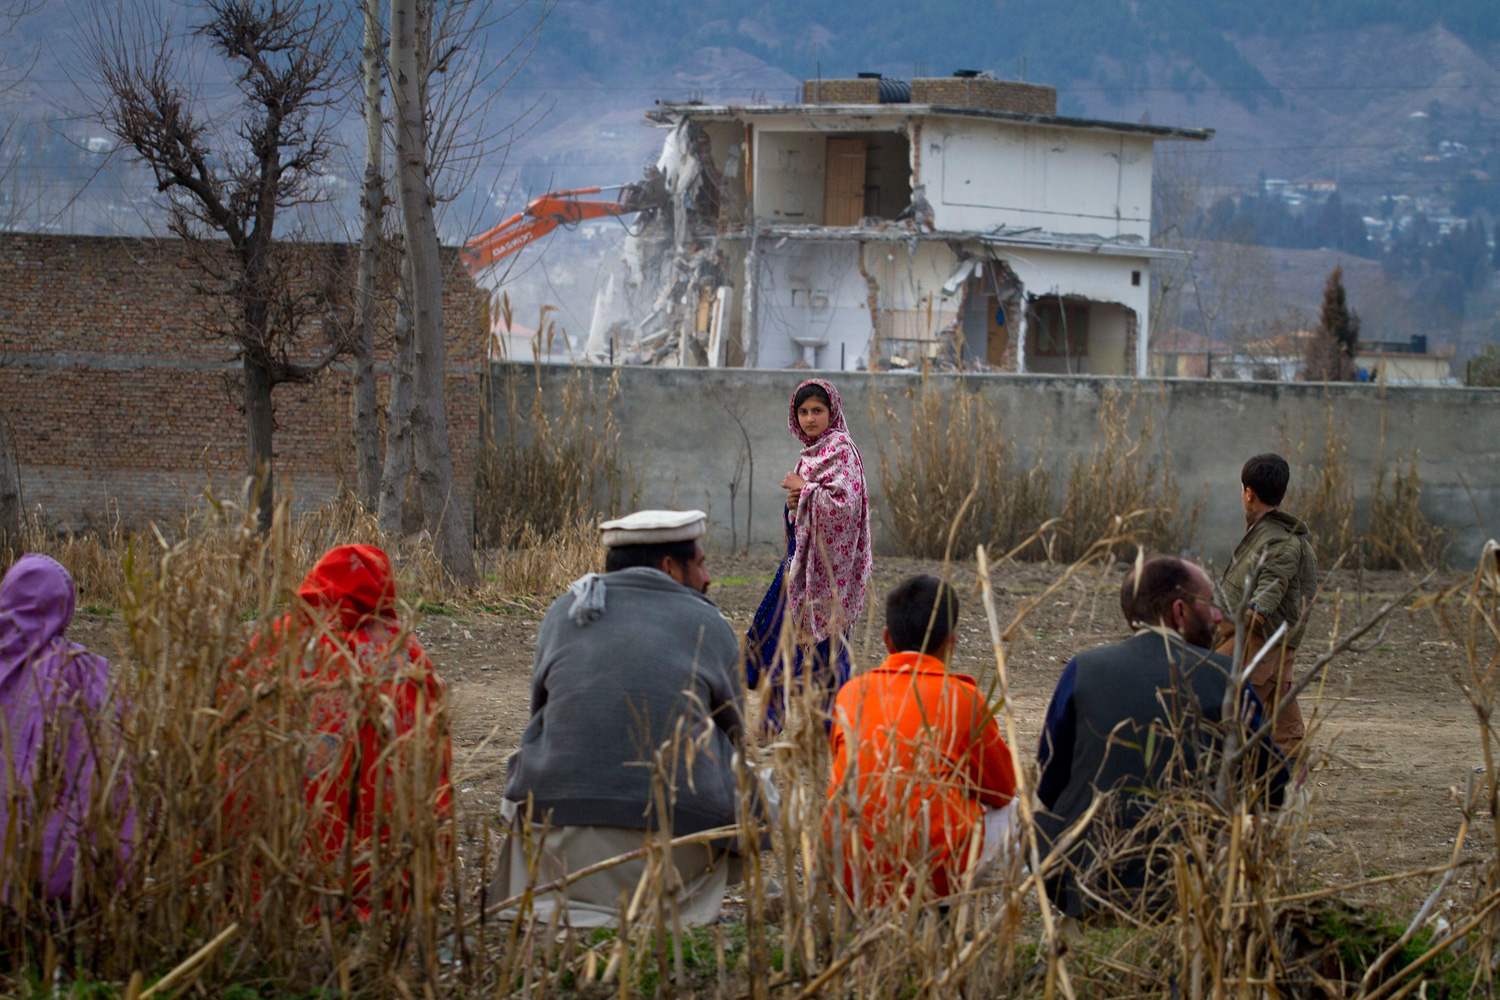 Feb. 26, 2012. A Pakistani family watches the compound of Osama bin Laden being demolished by authorities in Abbottabad, Pakistan.